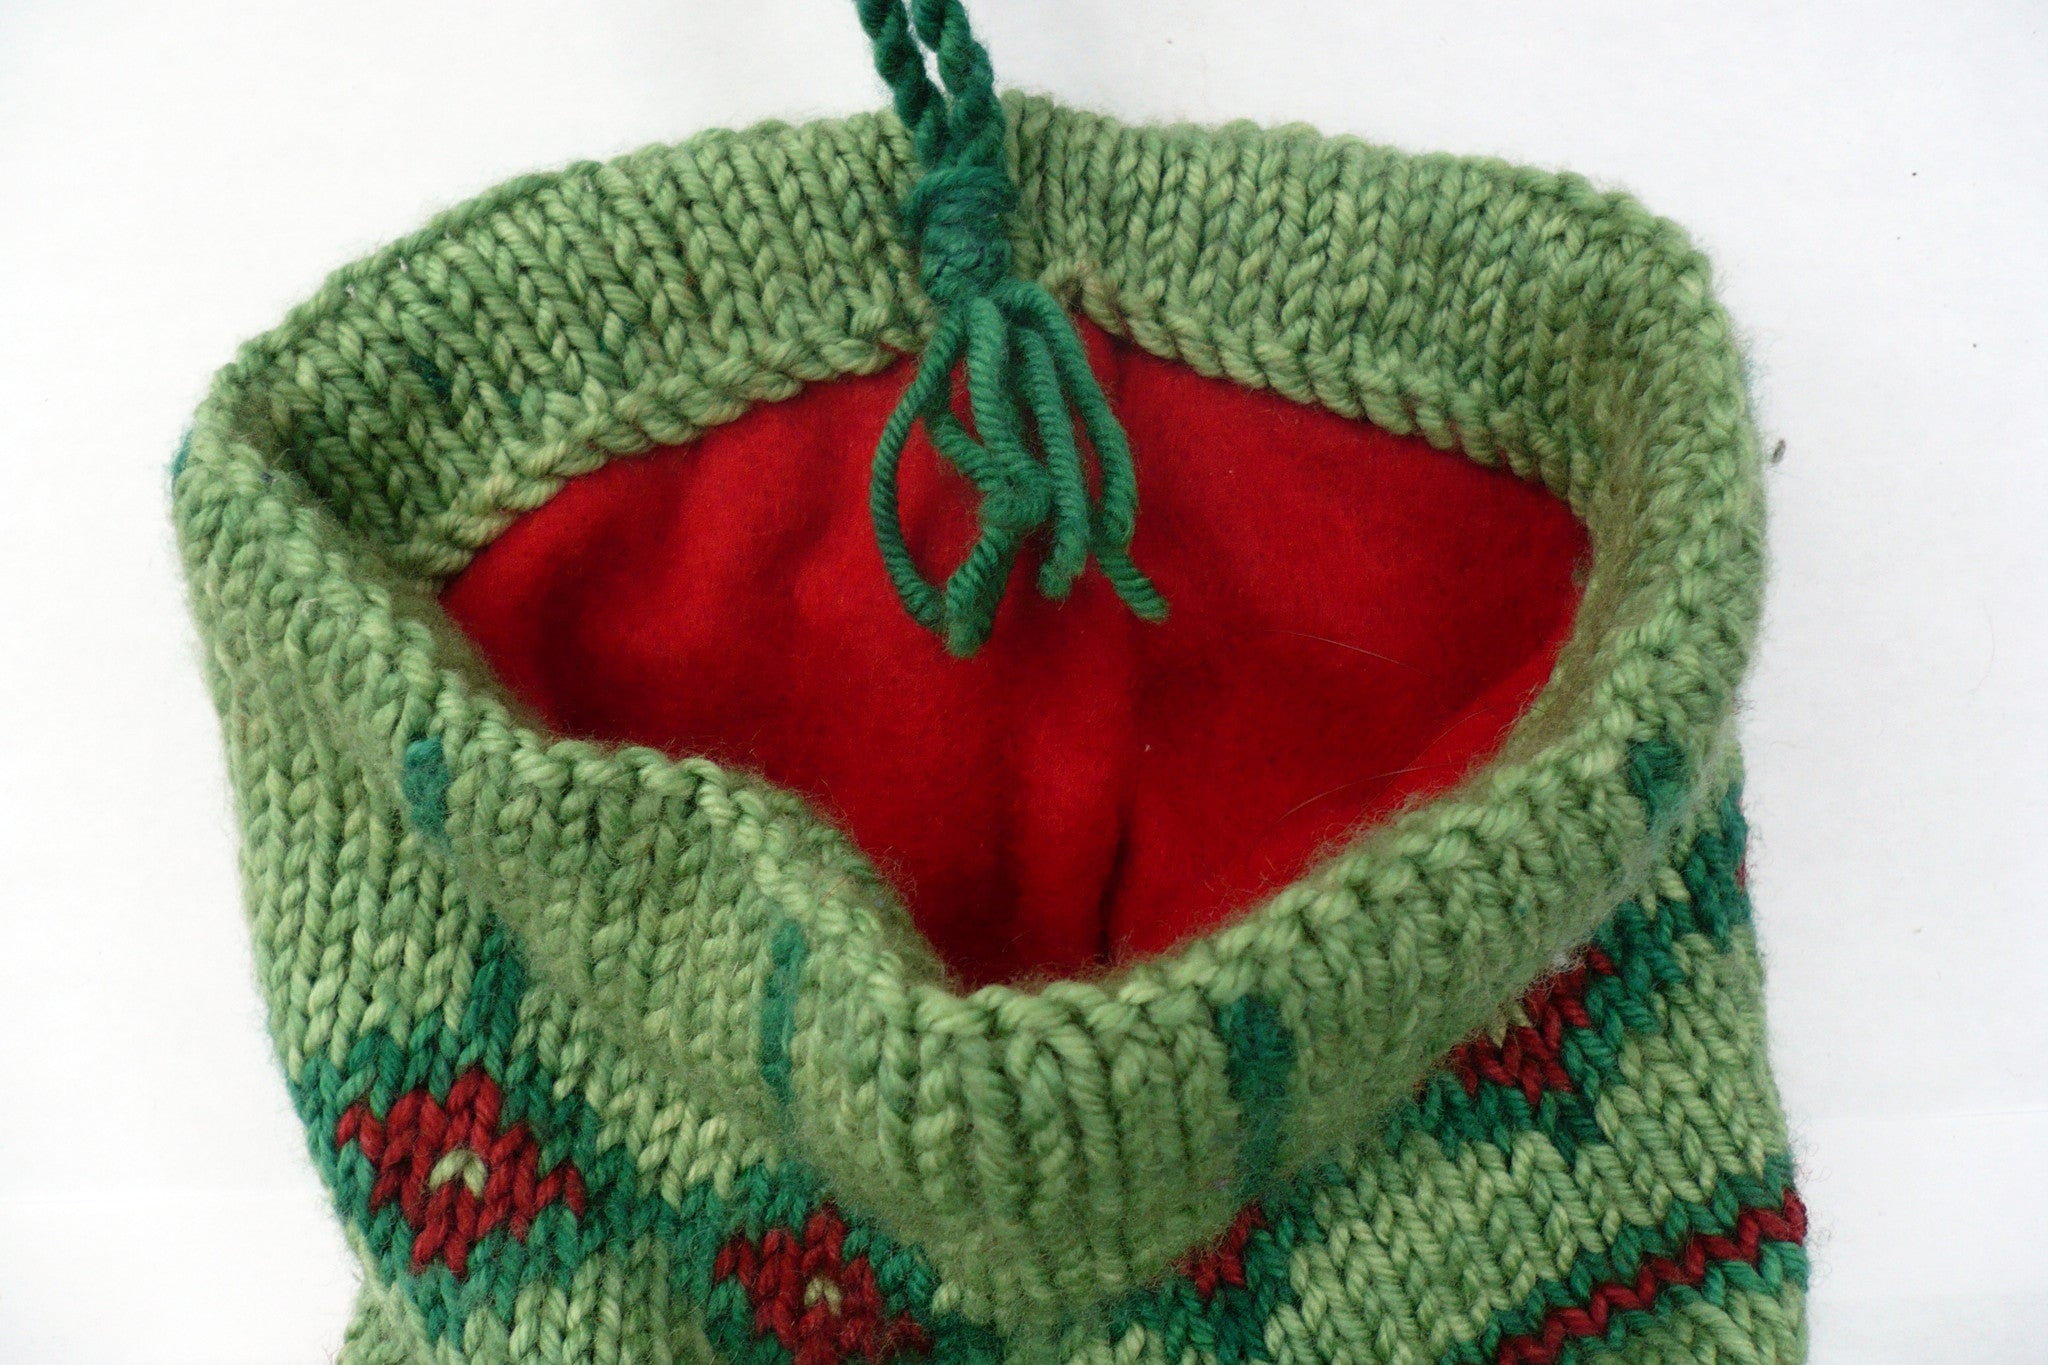 Holly Christmas Stocking Knitting Kit